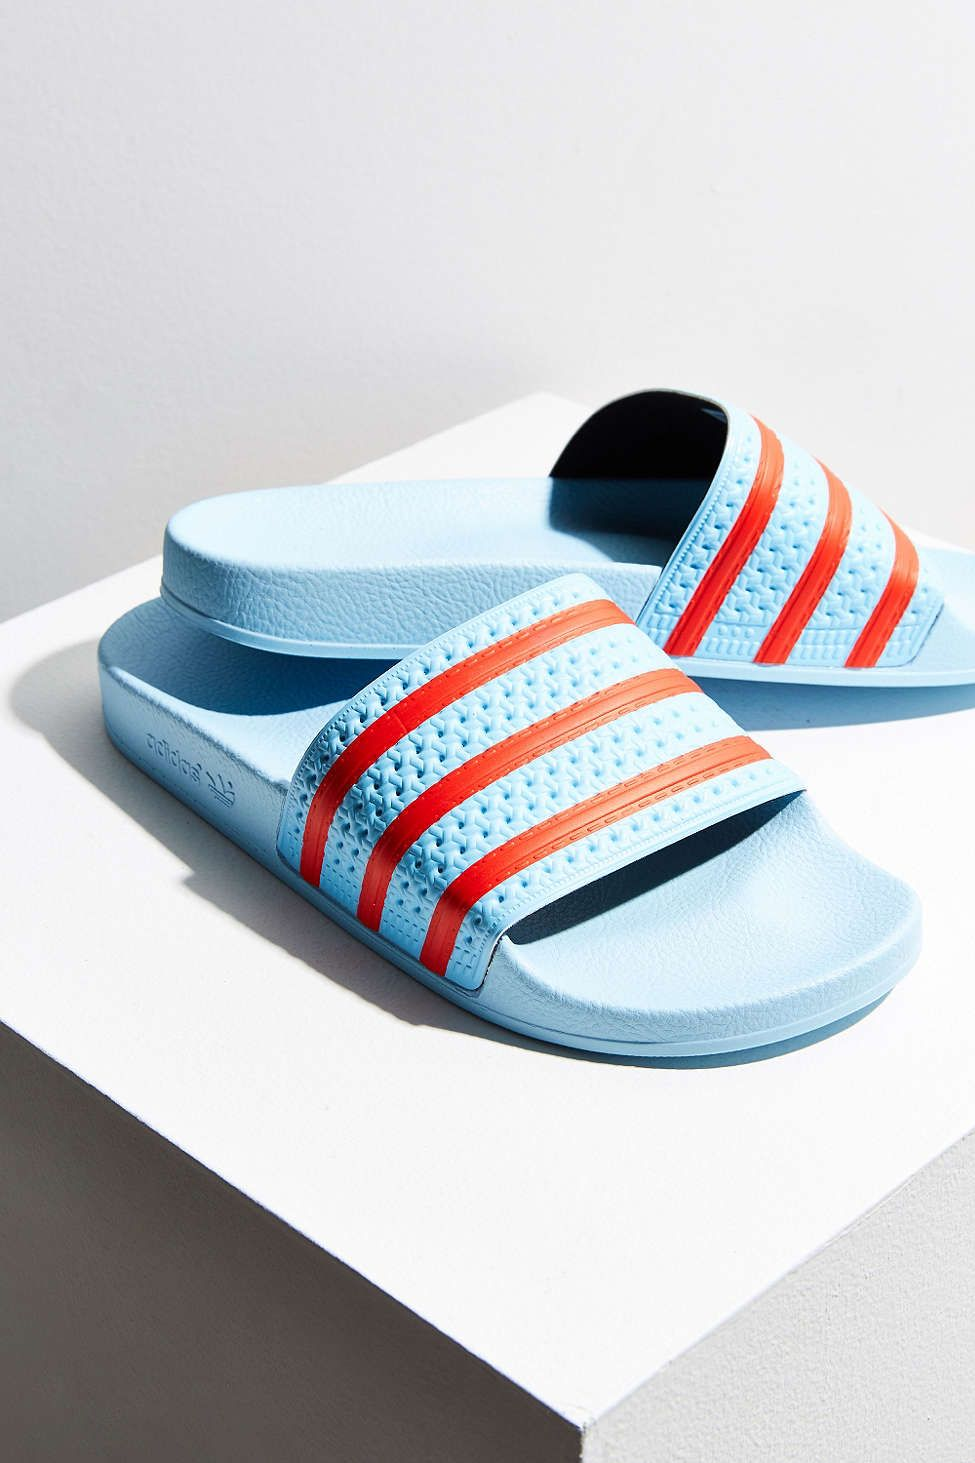 acb4e083943c0d adidas Blush Blue Adilette Pool Slide